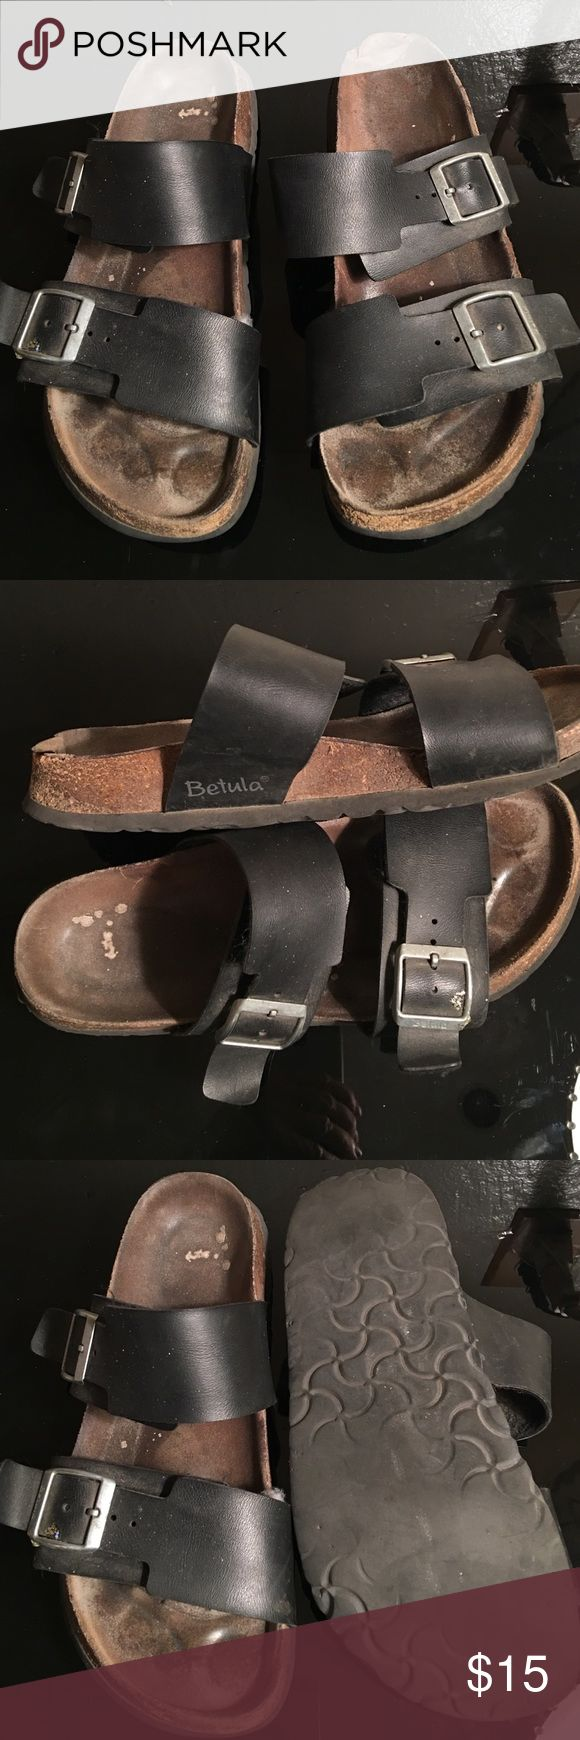 BIRKENSTOCK NARROW BETULA SANDALS SIZE 9 PREOWNED WORN SIGNS OF COSMETIC WEAR BIRKENDTOCK BETULA BLACK SANDALS IN SIZE 9 NARROW Birkenstock Shoes Sandals